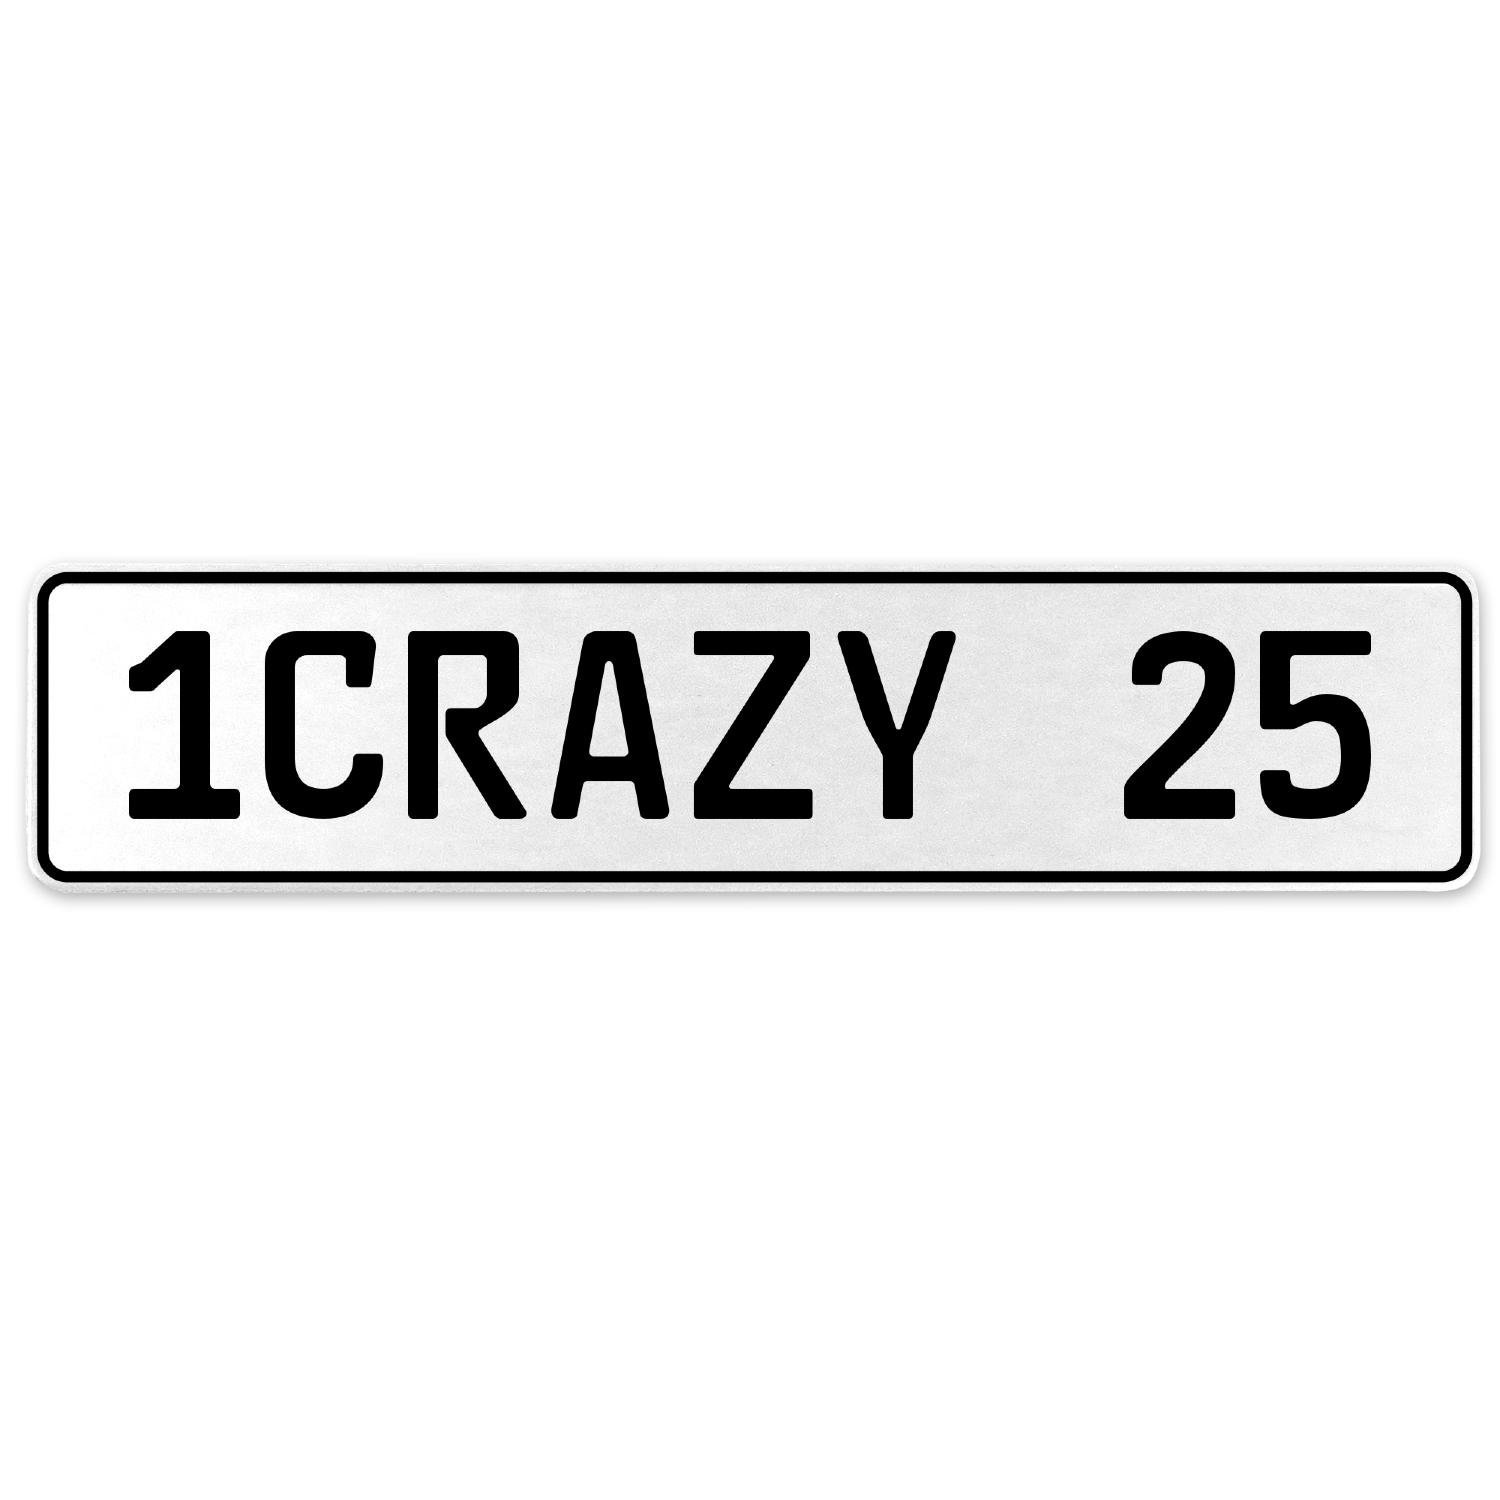 Vintage Parts 555711 1CRAZY 25 White Stamped Aluminum European License Plate